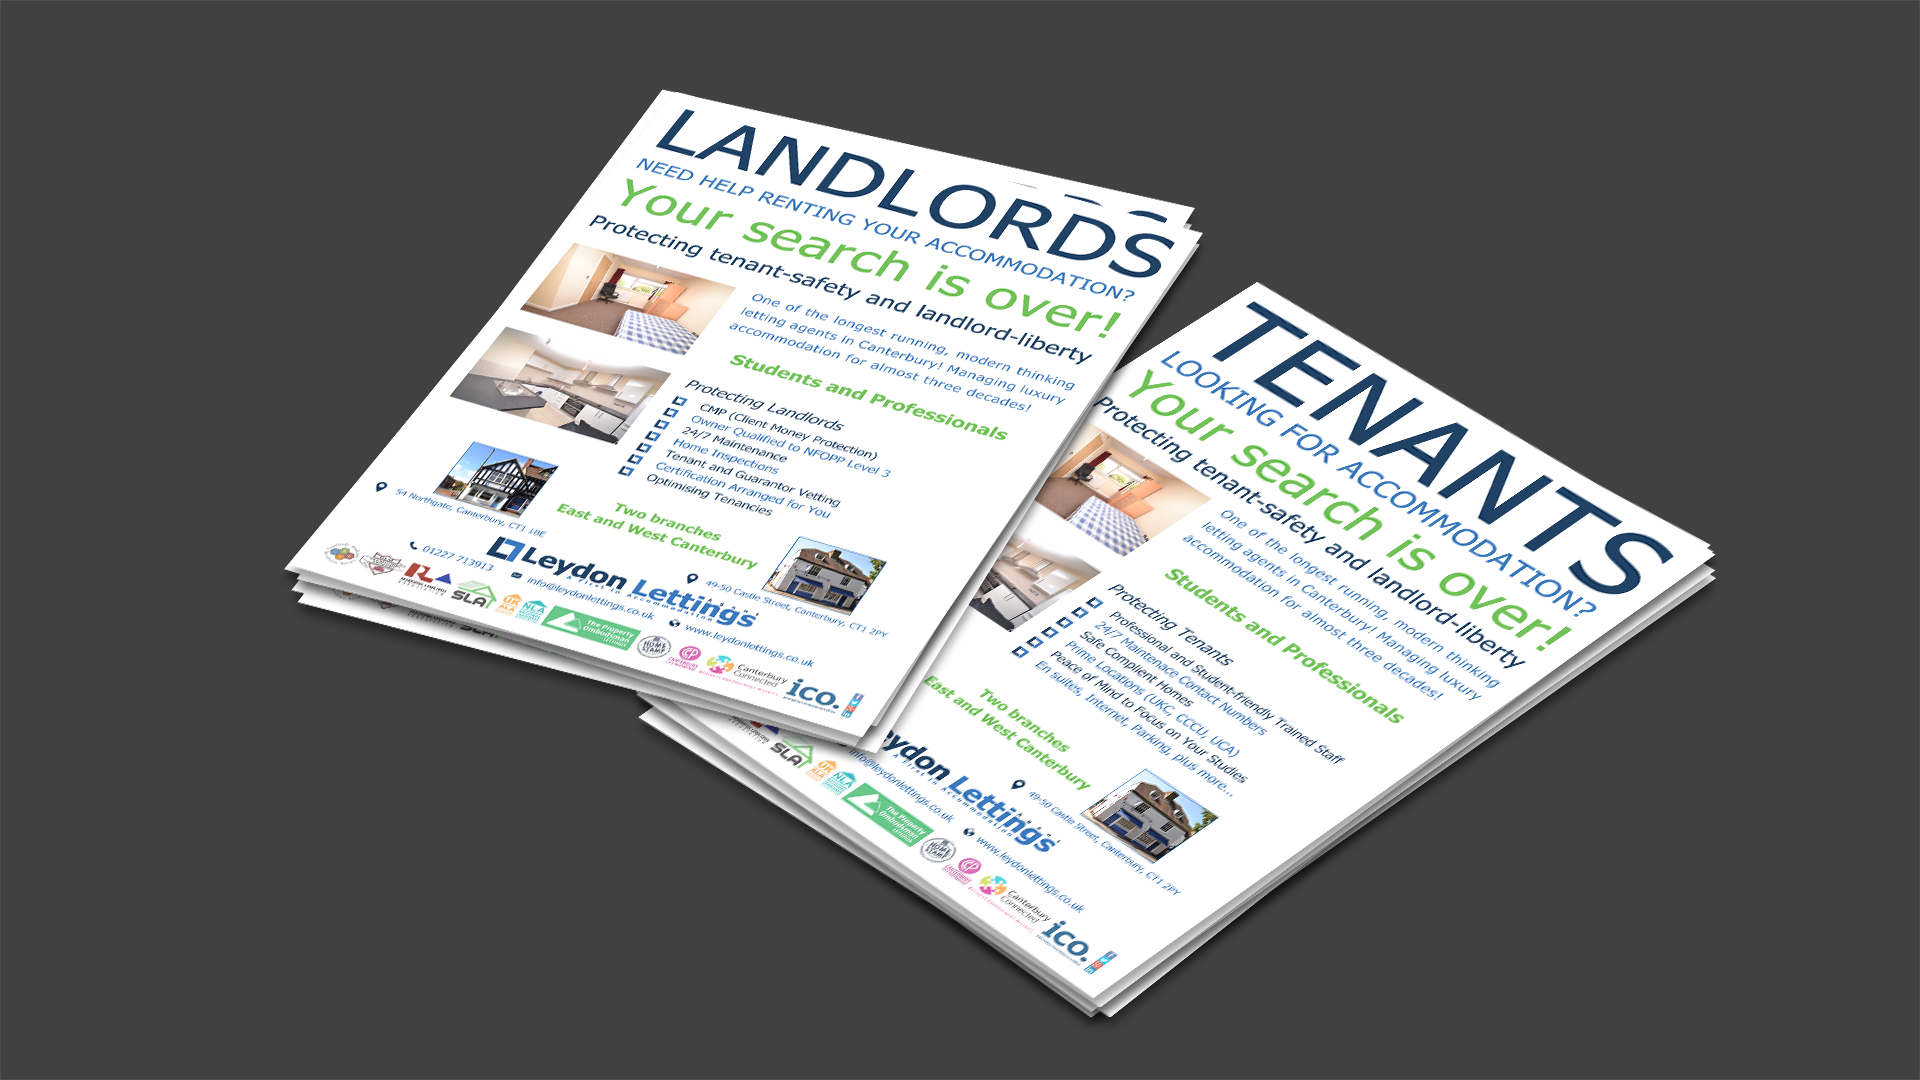 A5 Advertisement Leaflets: Graphic Design, Advertising and Marketing - Leydon Lettings